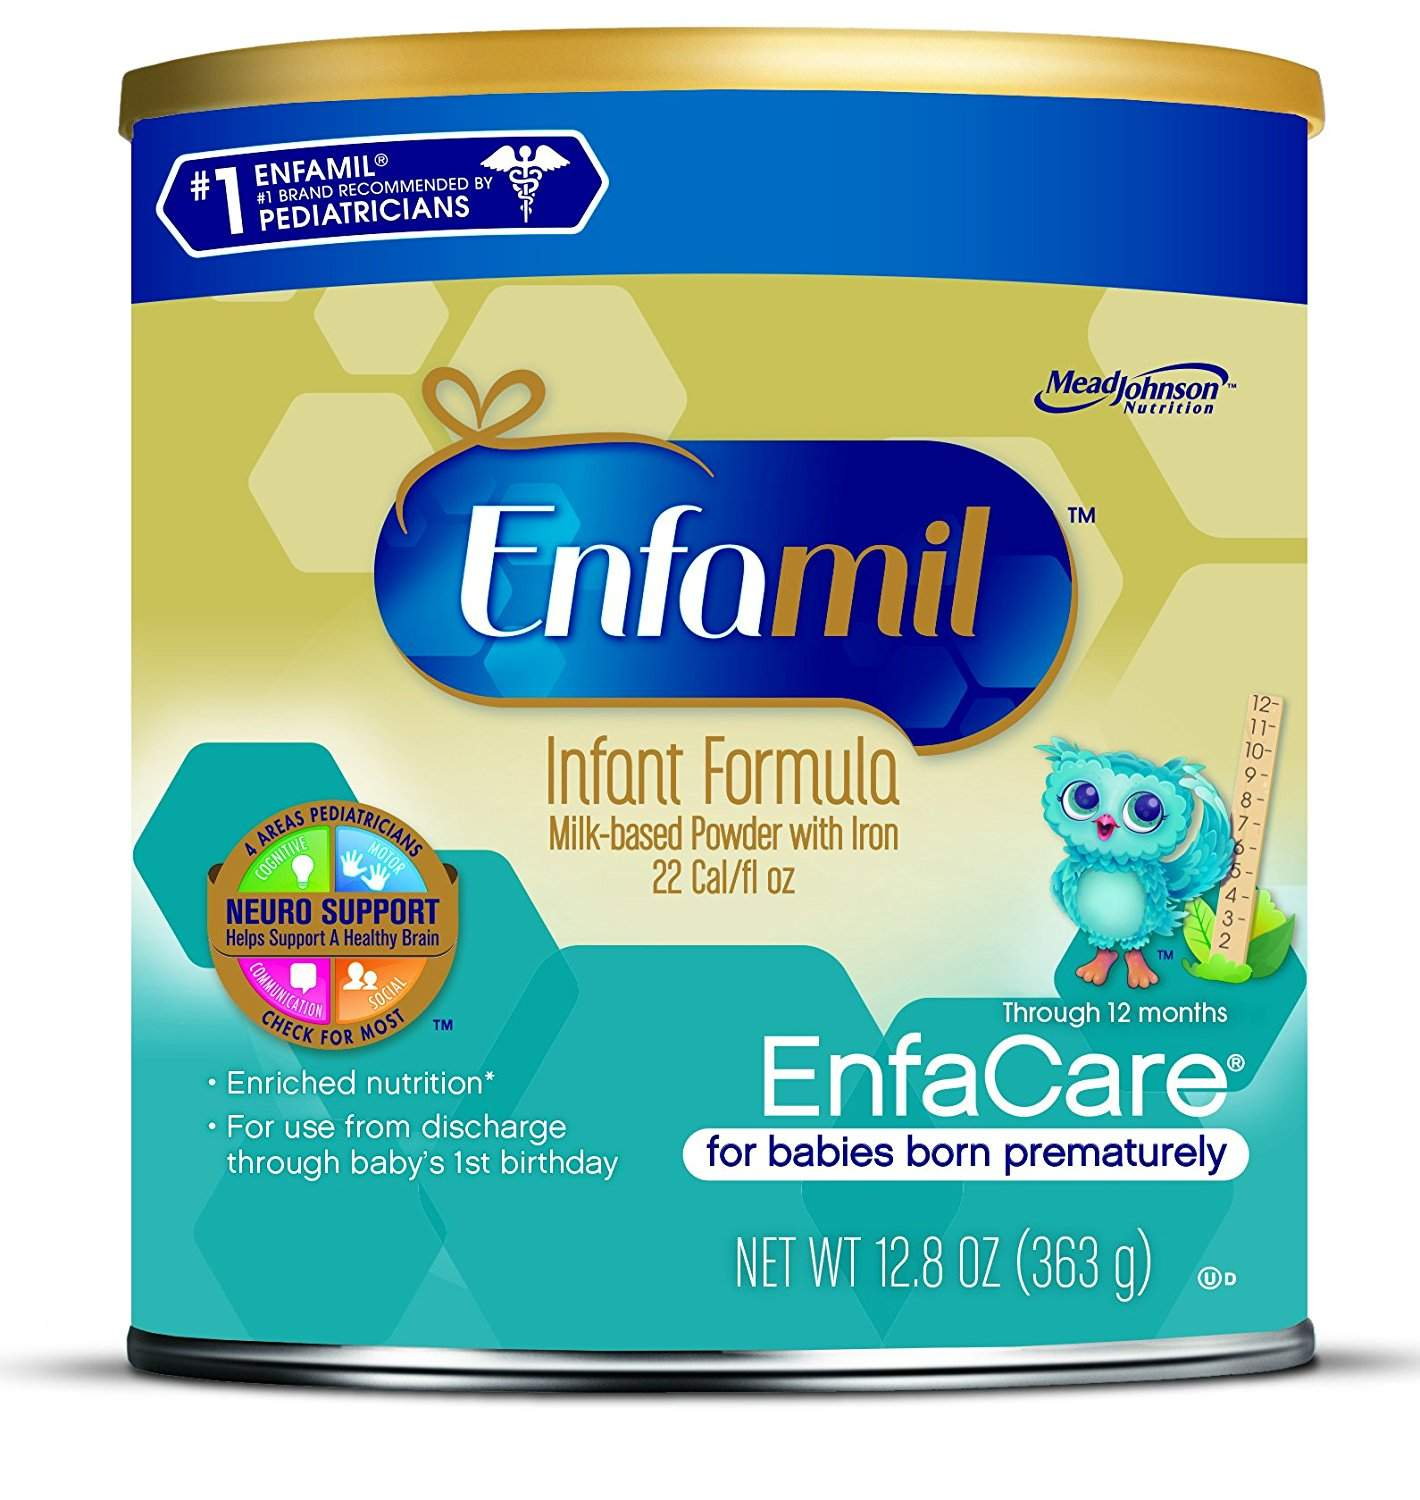 enfamil-enfa-care-infant-formula.jpg